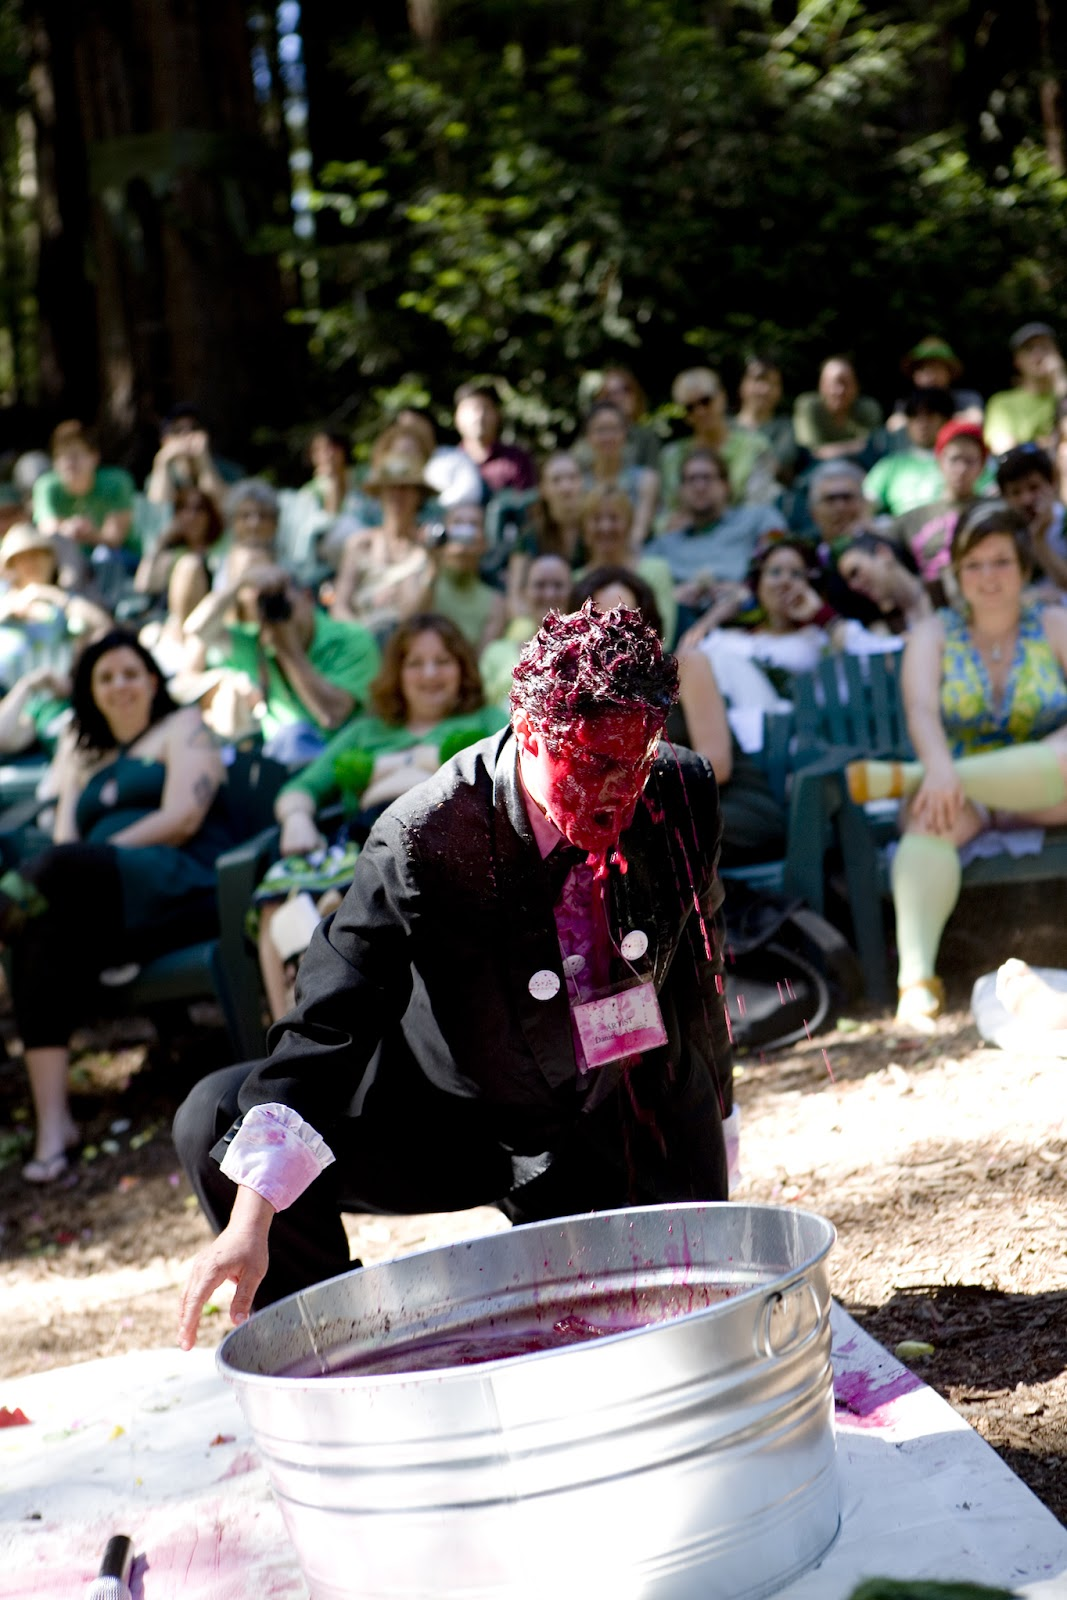 Danielle Abrams dunks her head in beets during the performance Routine